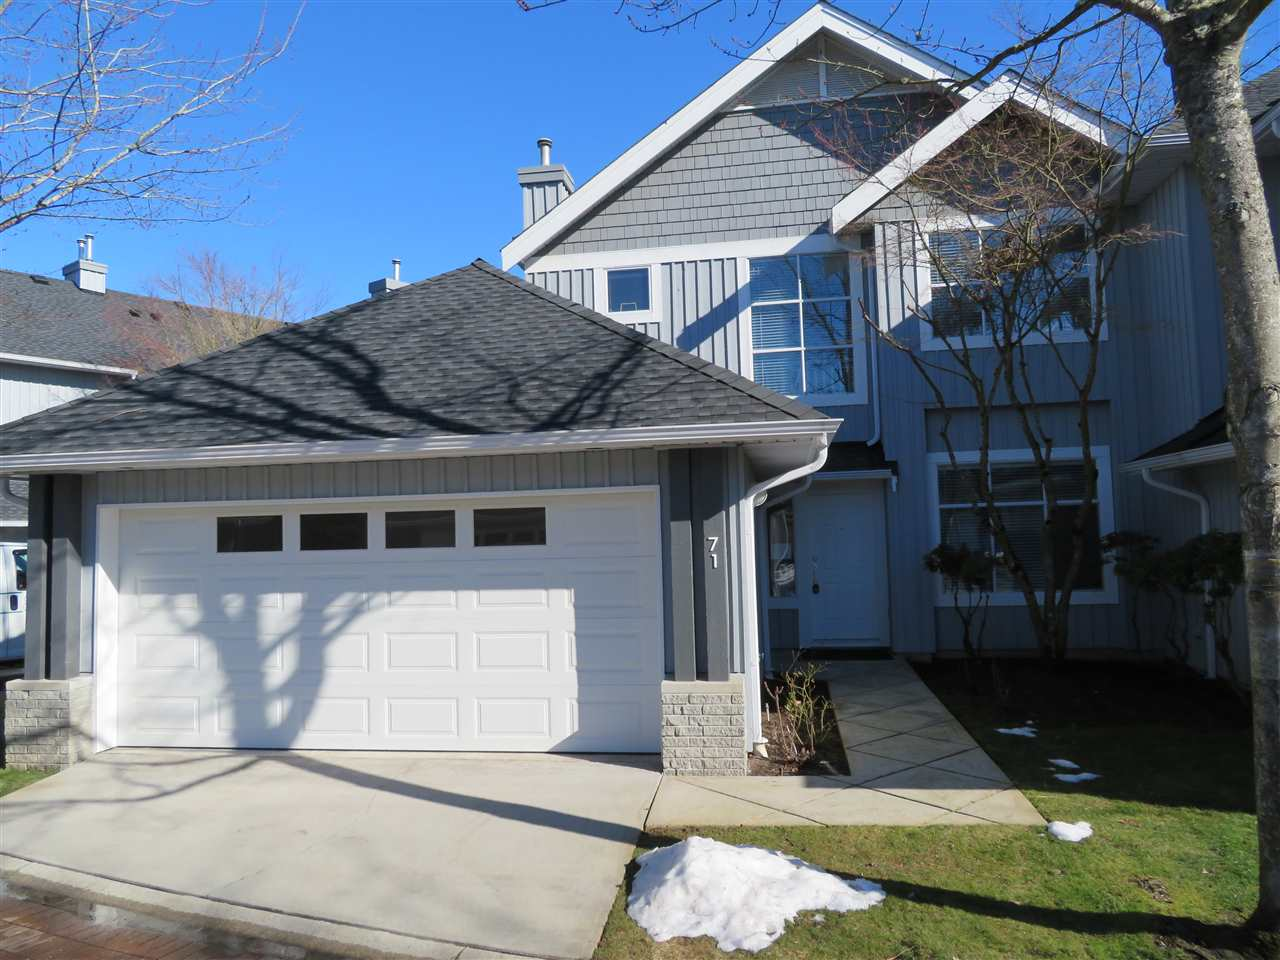 Buliding: 3555 Westminster Highway, Richmond, BC